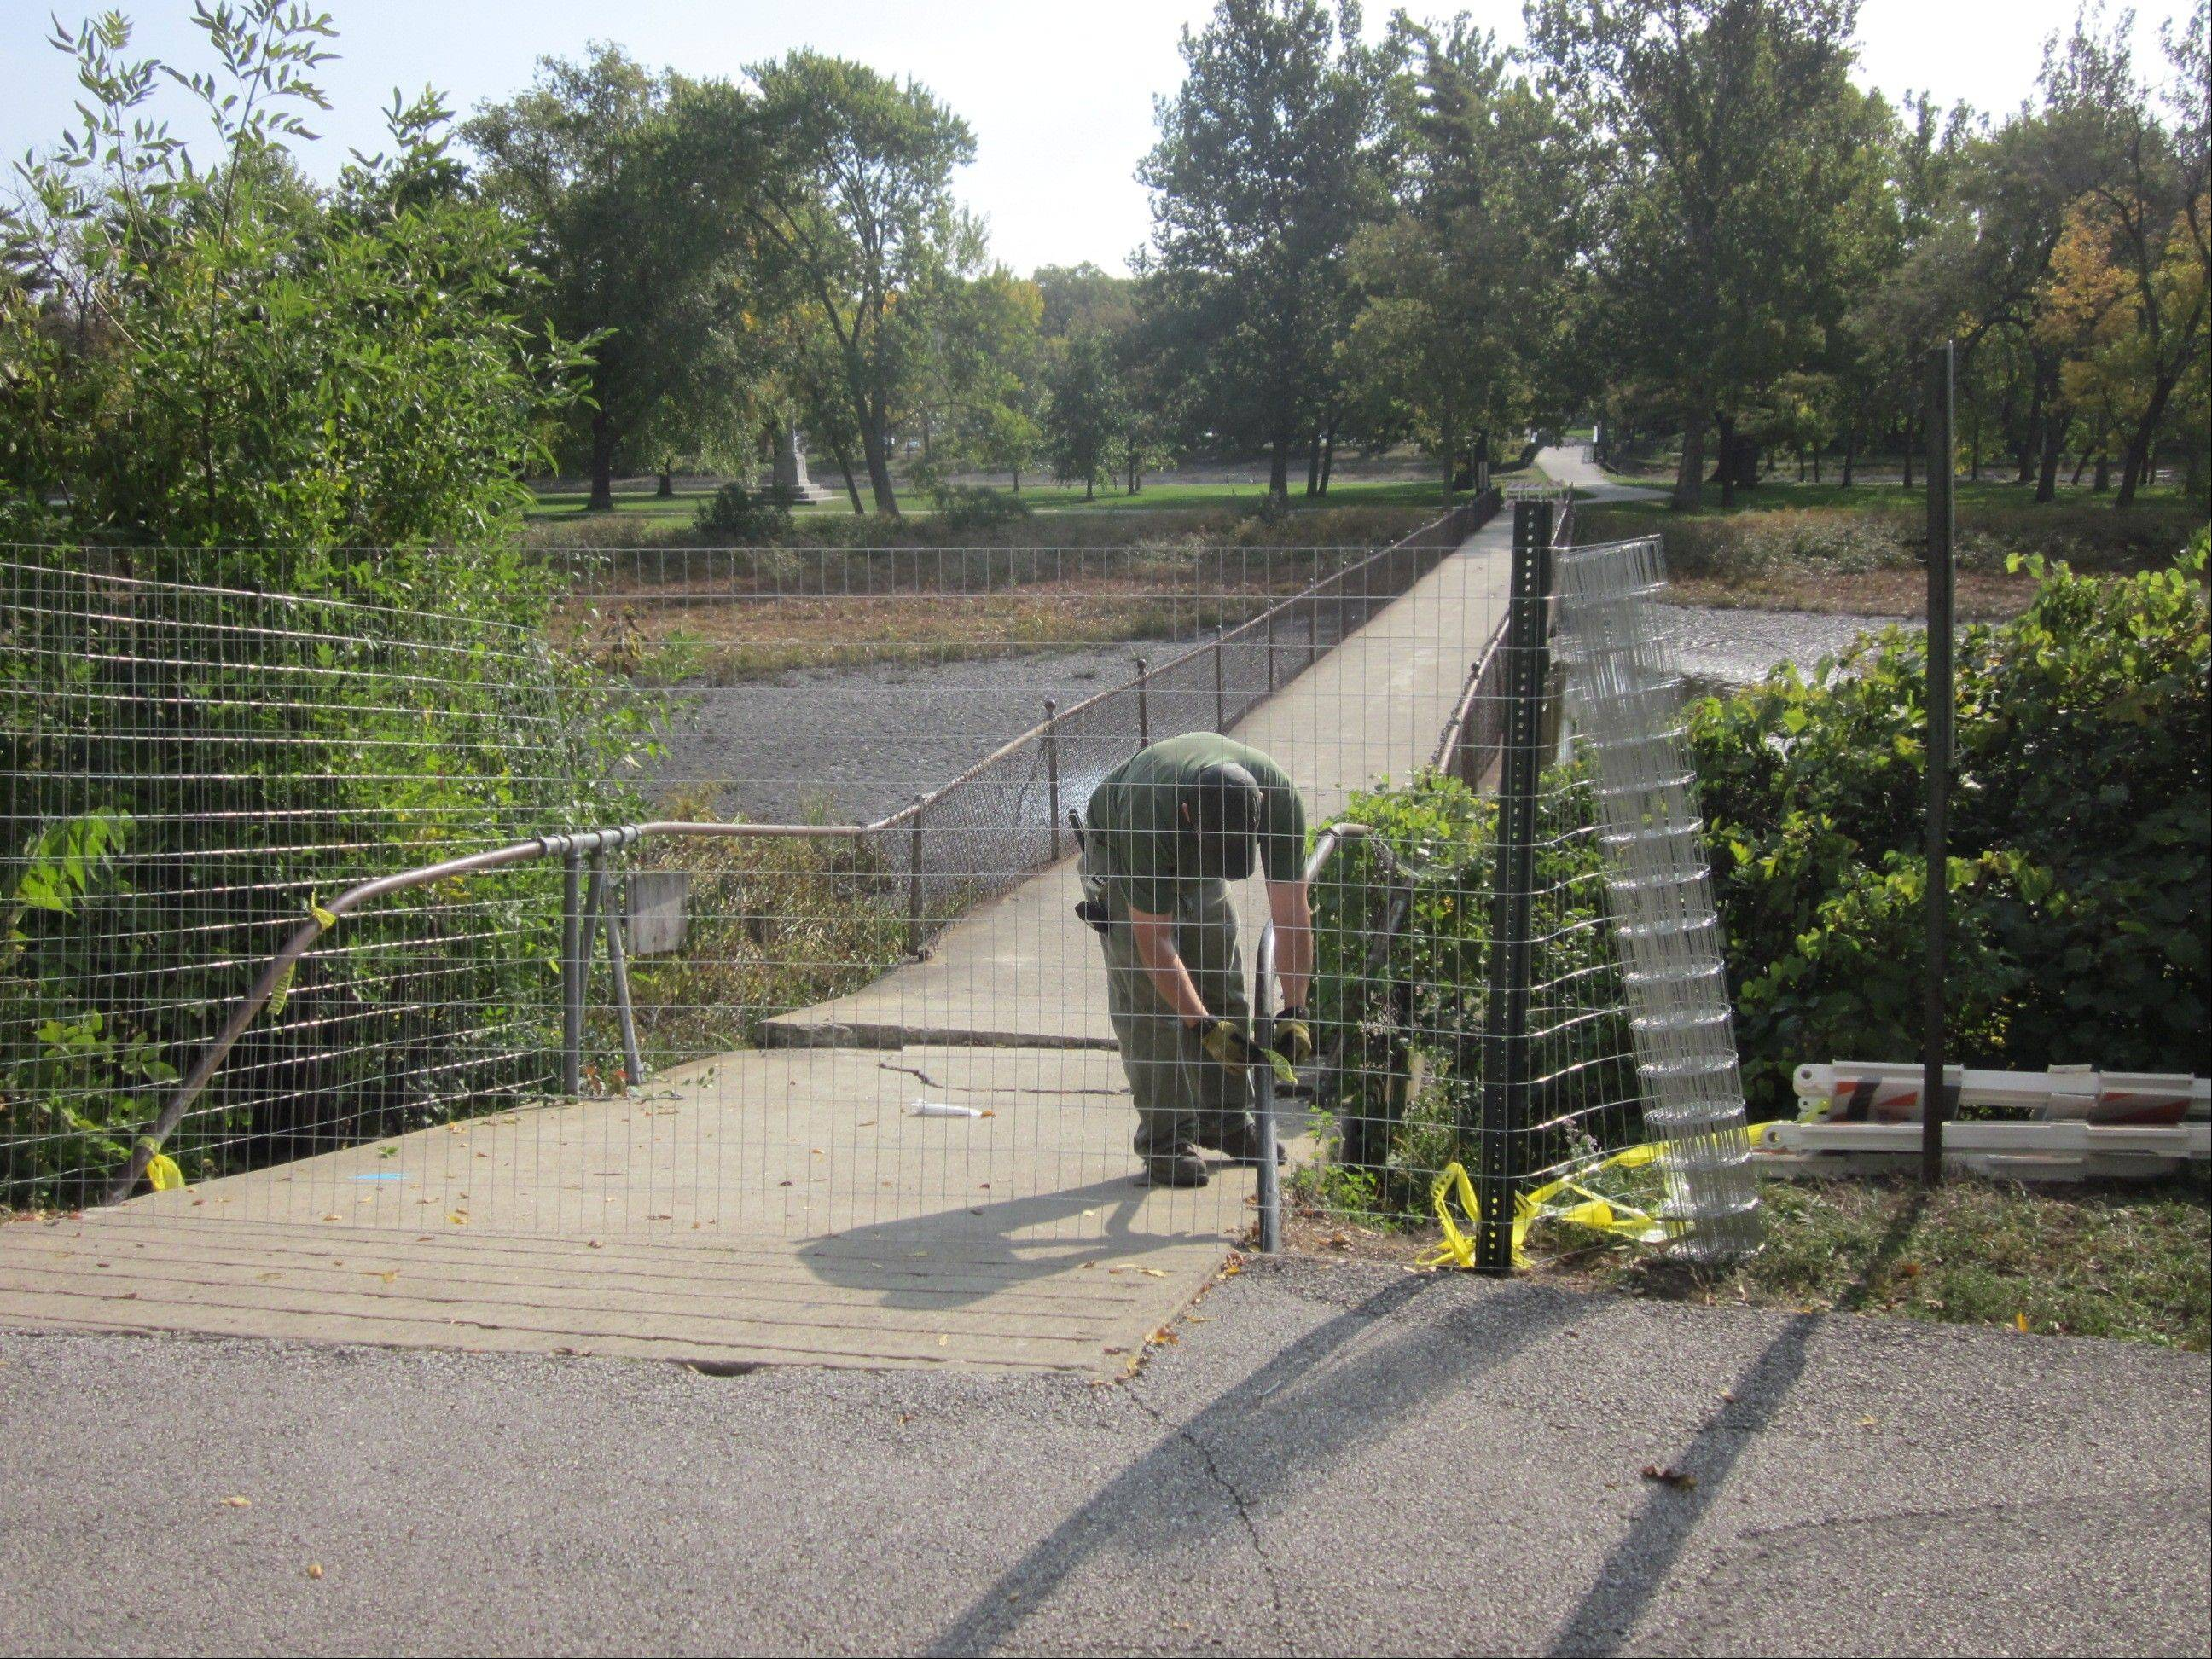 A worker barricades the western end of a bridge connecting the west bank of the Fox River to an island in Fabyan Forest Preserve Friday morning. The bridge has started collapsing at the western end.